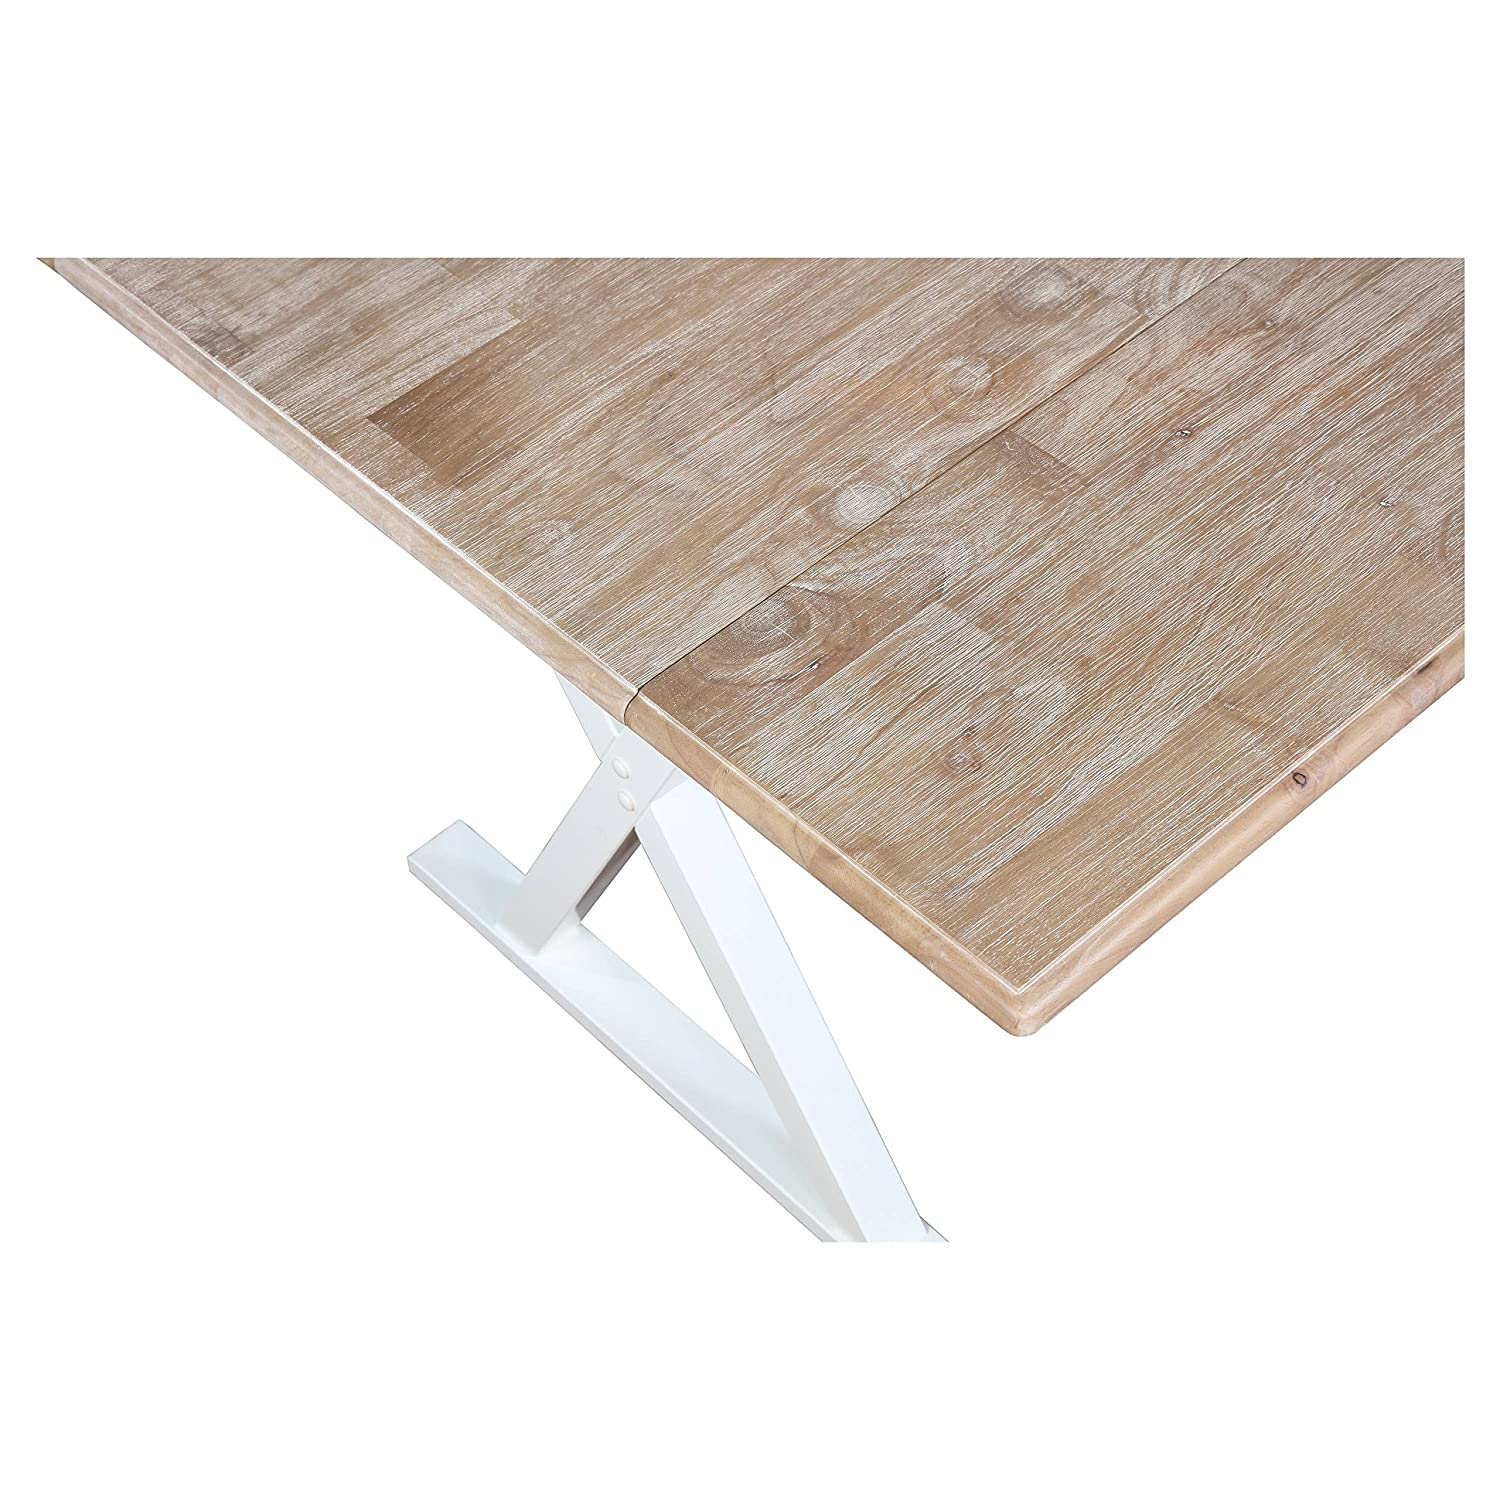 "Amazon Drop Leaf Rustic White 40"" Dining Table Tables"